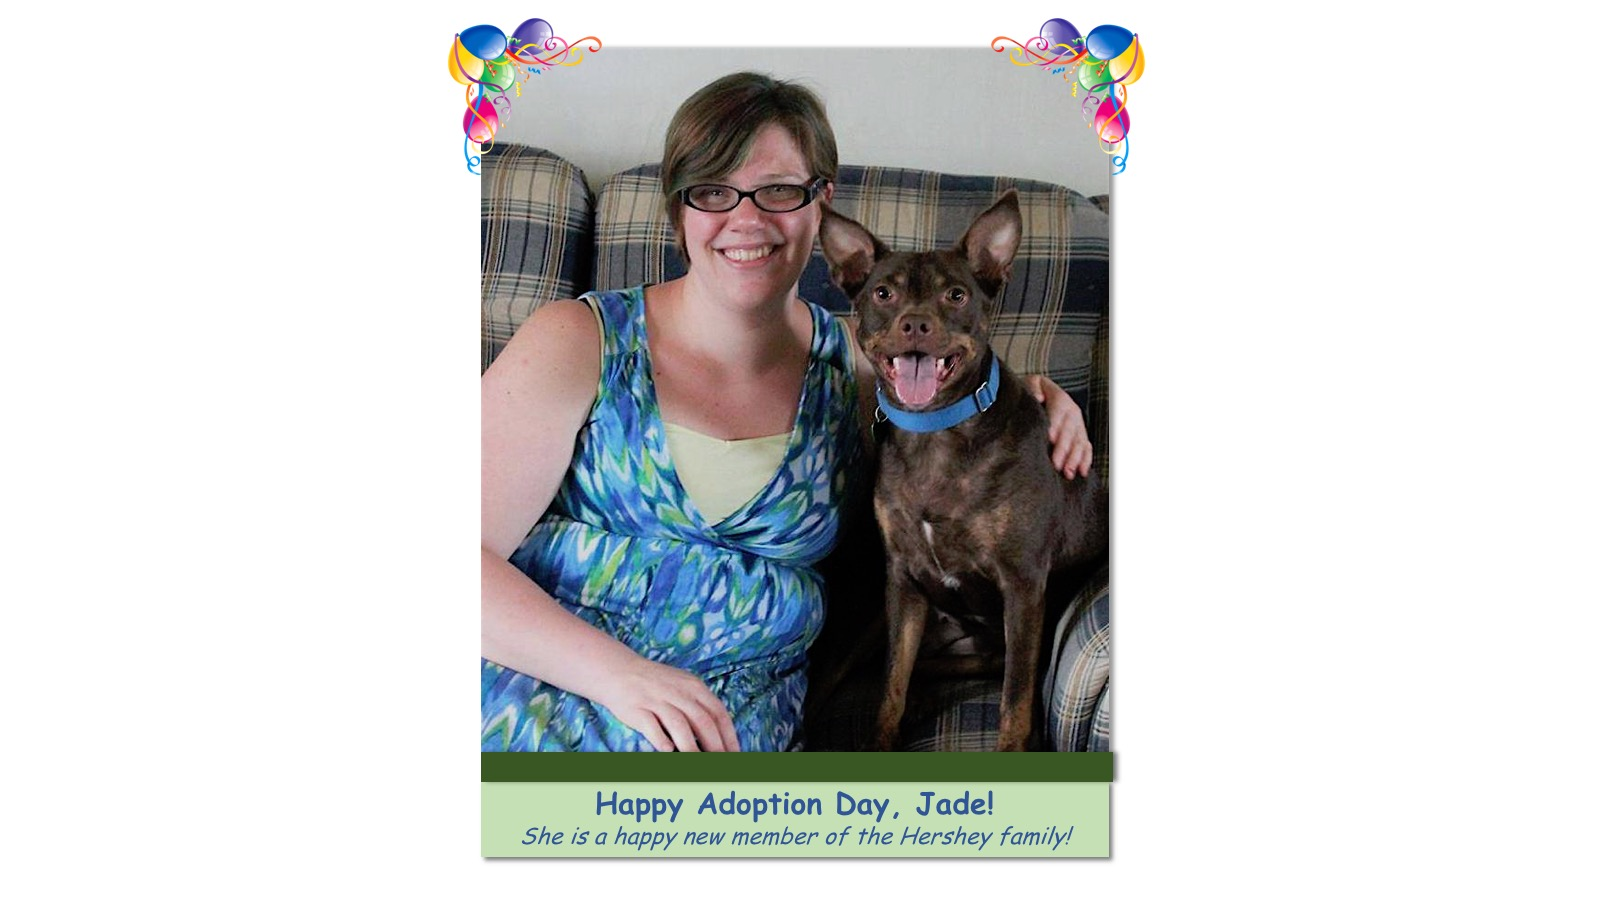 Jade_Adoption_Photo_2018.jpg